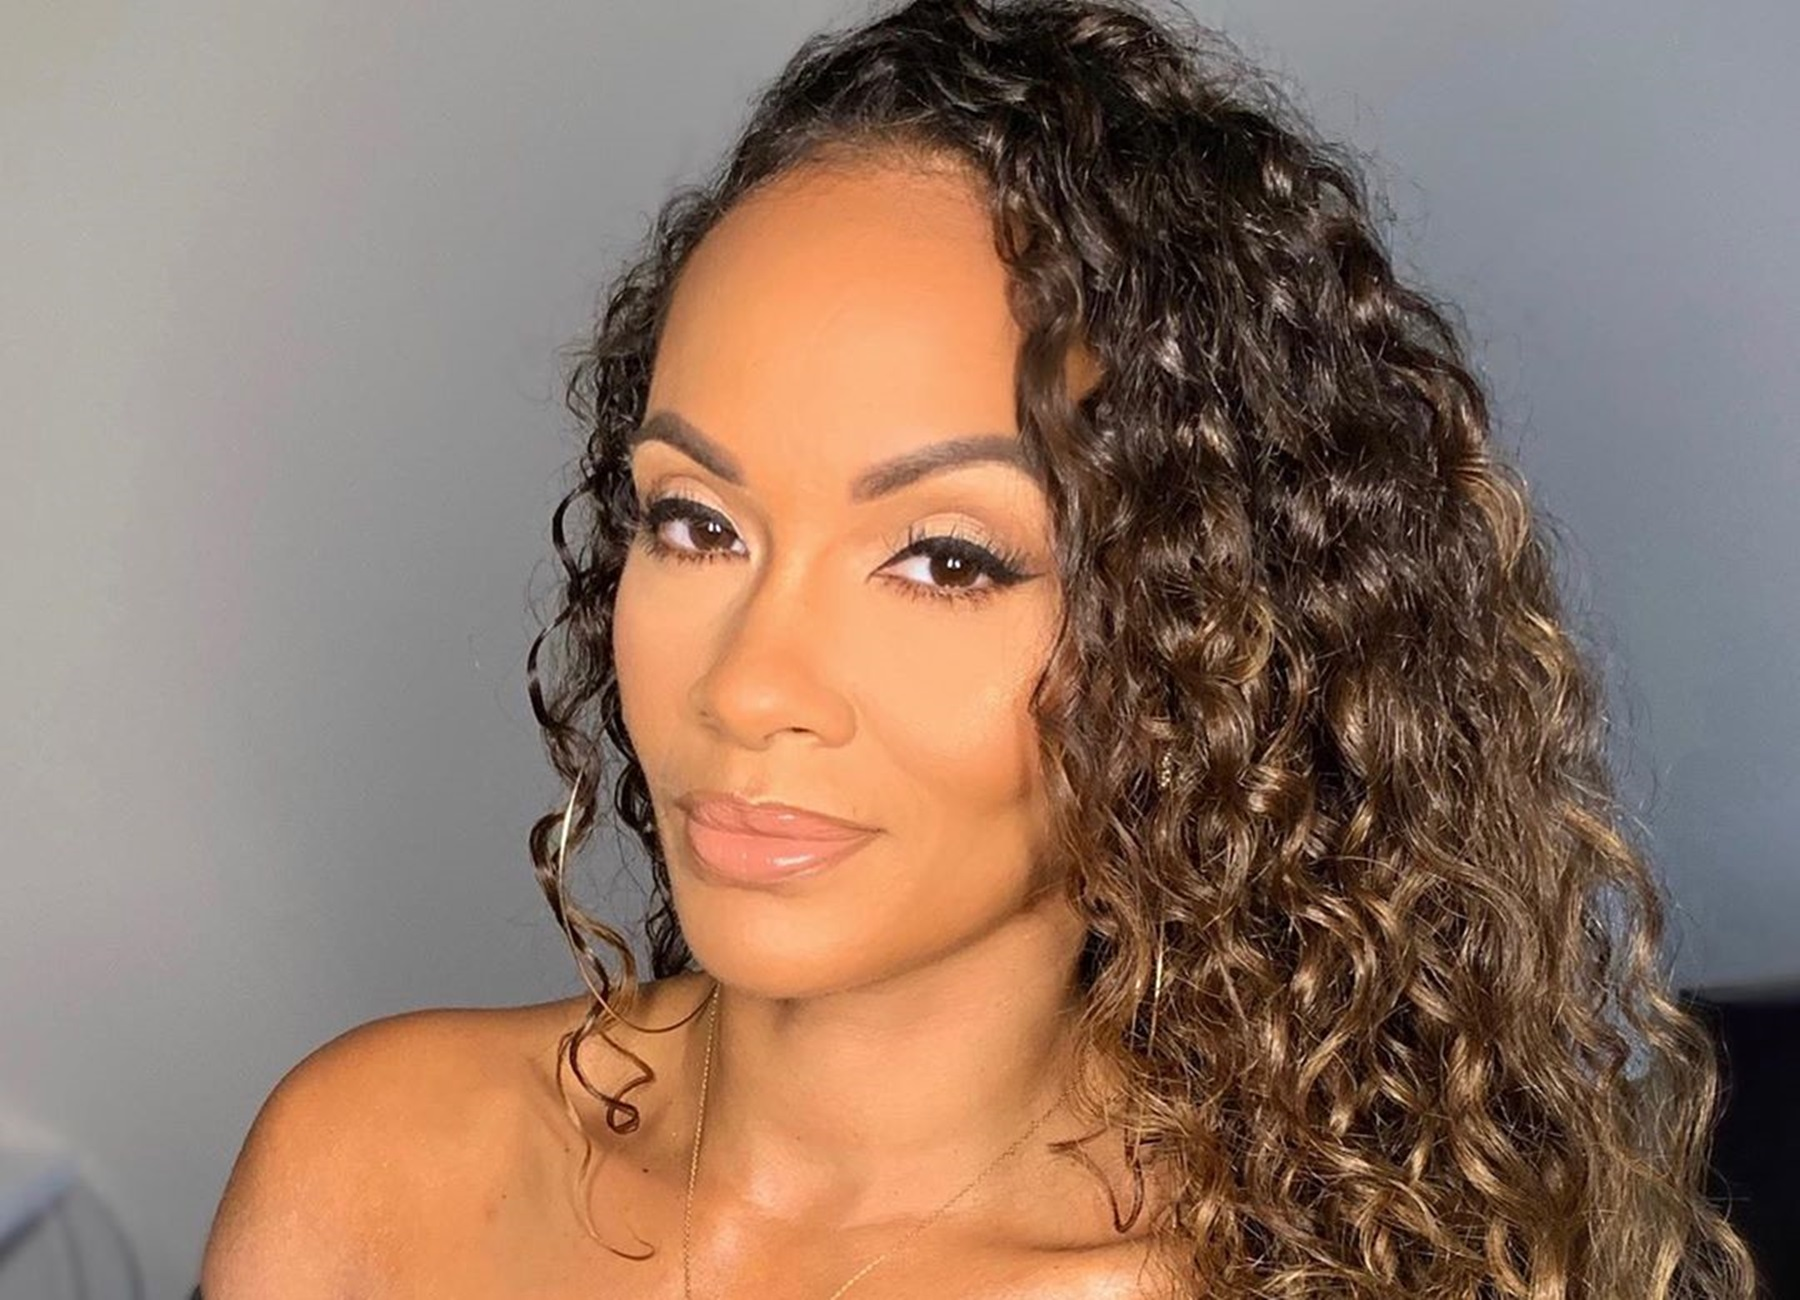 "Things between Evelyn Lozada and Ogom Chijindu – OG – seem to be deteriorating fast, although it is becoming less and less clear which of the two has a point. Evelyn recently received a lot of criticism from her fans – and fans of OG – for her behavior, with some implying that she should stay away from her Basketball Wives co-star and some even throwing out the suggestion that OG should get a restraining order against her. And in a strange turn of events, recent reports indicate that things might go the other way around, with Evelyn considering this very option for herself right now because she is scared of OG's ""mental state."" It is not known what grounds she would seek her order on, as the only major incident that has happened between the two recently was the aggressive attitude displayed by OG in a reunion episode of the show. The recent incident seemed to stem from the fact that OG felt slighted by the seating arrangement and left the stage in a huff. However, she returned when she was informed that filming was still running without her, which made her even angrier. https://www.instagram.com/p/B1ZcsawHEB9/ Many have pointed out that while her behavior was not entirely appropriate, it hardly constitutes a restraining order, and Evelyn Lozada might just want to look in another direction until the wind blows over. https://www.instagram.com/p/B15EpiVHDtT/ Others have been more supportive of the reality star, pointing out that there is a lot of toxicity on the show's set, and it is not healthy for anyone at this point, even the production itself. One fan weighed on the drama by saying: ""They stay hating on you! Keep doing what you do! 😘😘😘"" A critic responded by: ""That's not the best advice, she should be a better person. so she should keep being a bully using throwing out racist comments??"" Another stated: ""Evelyn would you tell me why are the ppl tryna get you boycotted from BASKETBALL WIVES??? 🤔🤔🤔🤔"" https://www.instagram.com/p/B2hrxegnLO3/ This person said: ""It was because of the racial stuff she said...some folks want it to be because OG was mad about the ToeG comment, but it was deeper than that...and it was the fans, not OG that started the petition. Unfortunately, folks think that you're a hater when you point out terrible behavior. Evelyn has behaved like a bigoted bully this season and its really sad. she called on a monkey and called Cece ling ling and did some shit with her teeth to imitate a Chinese person."""